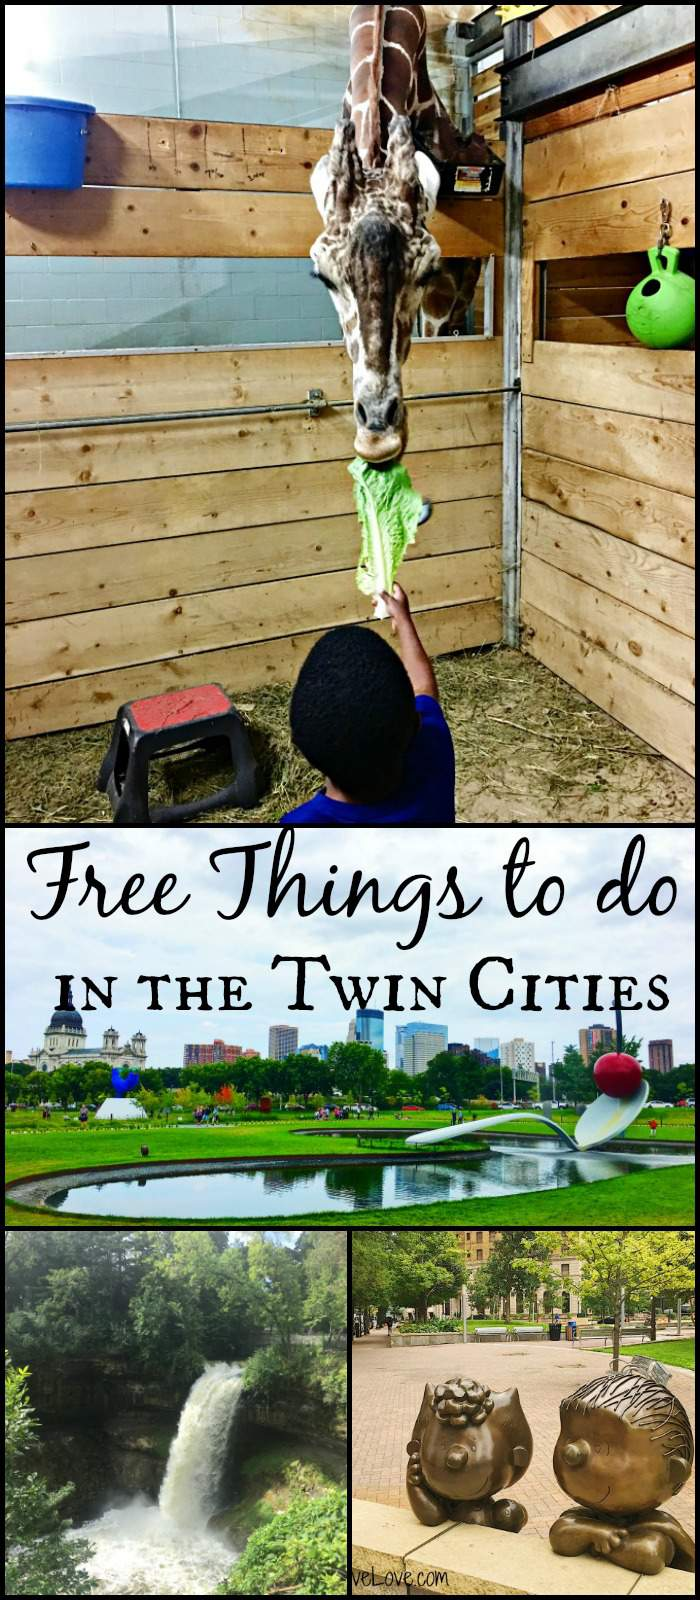 These practical tips will show you how to save money on a family vacations and includes a list of free things to do in the Twin Cities, too. Minnesota, USA.